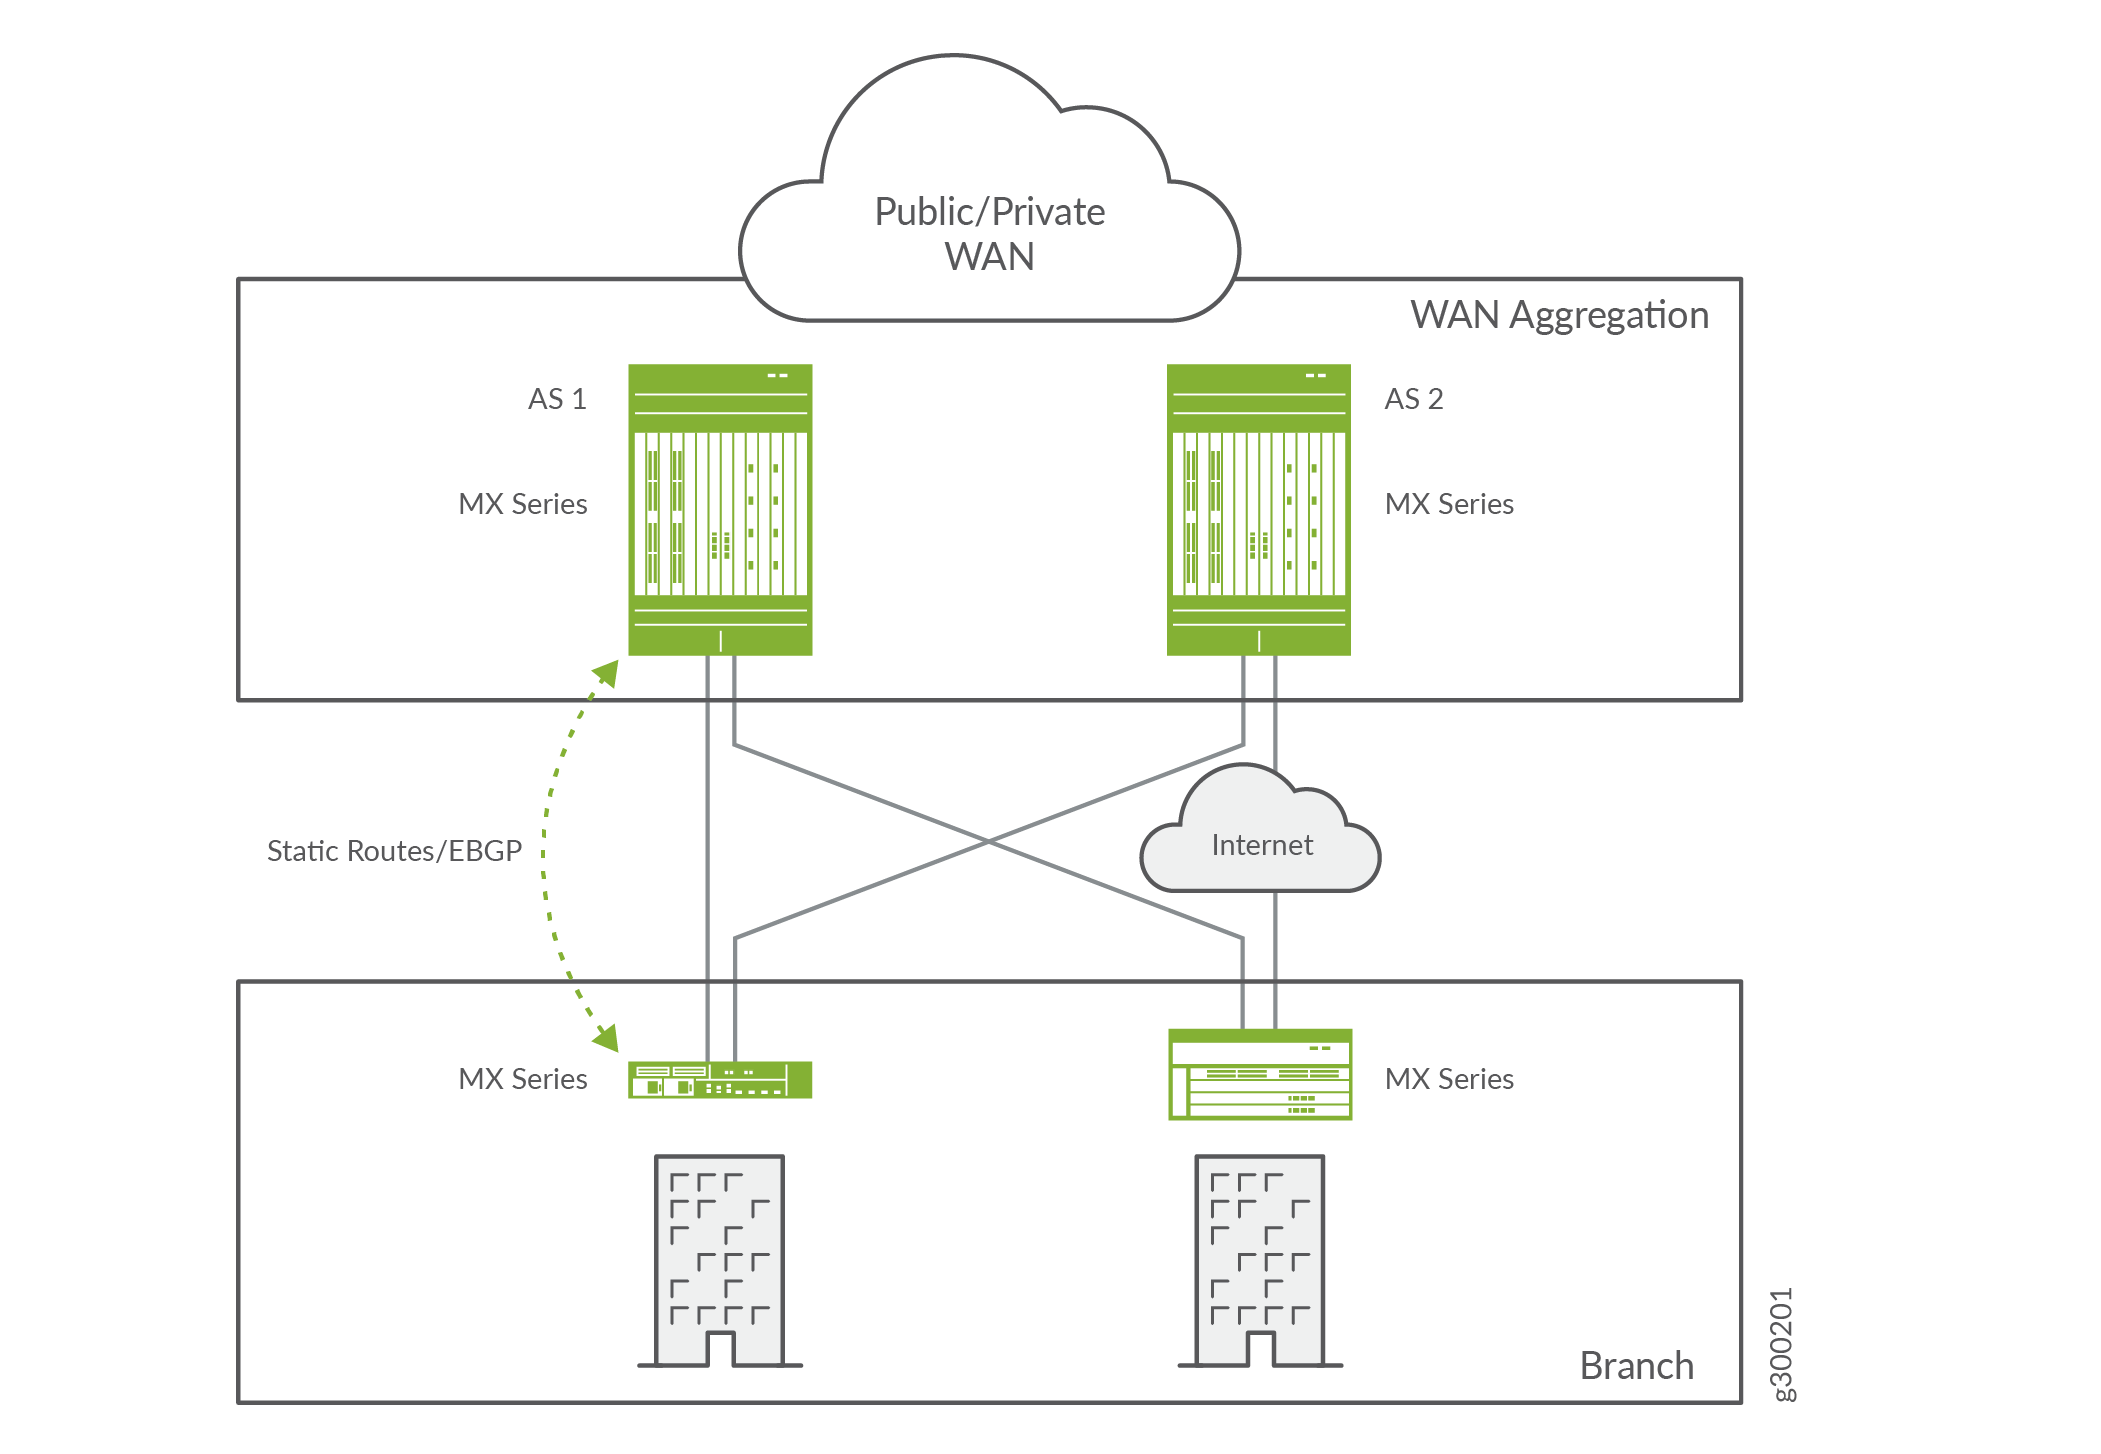 Sample WAN aggregation routers that combine multiple remote branch sites into a single enterprise WAN